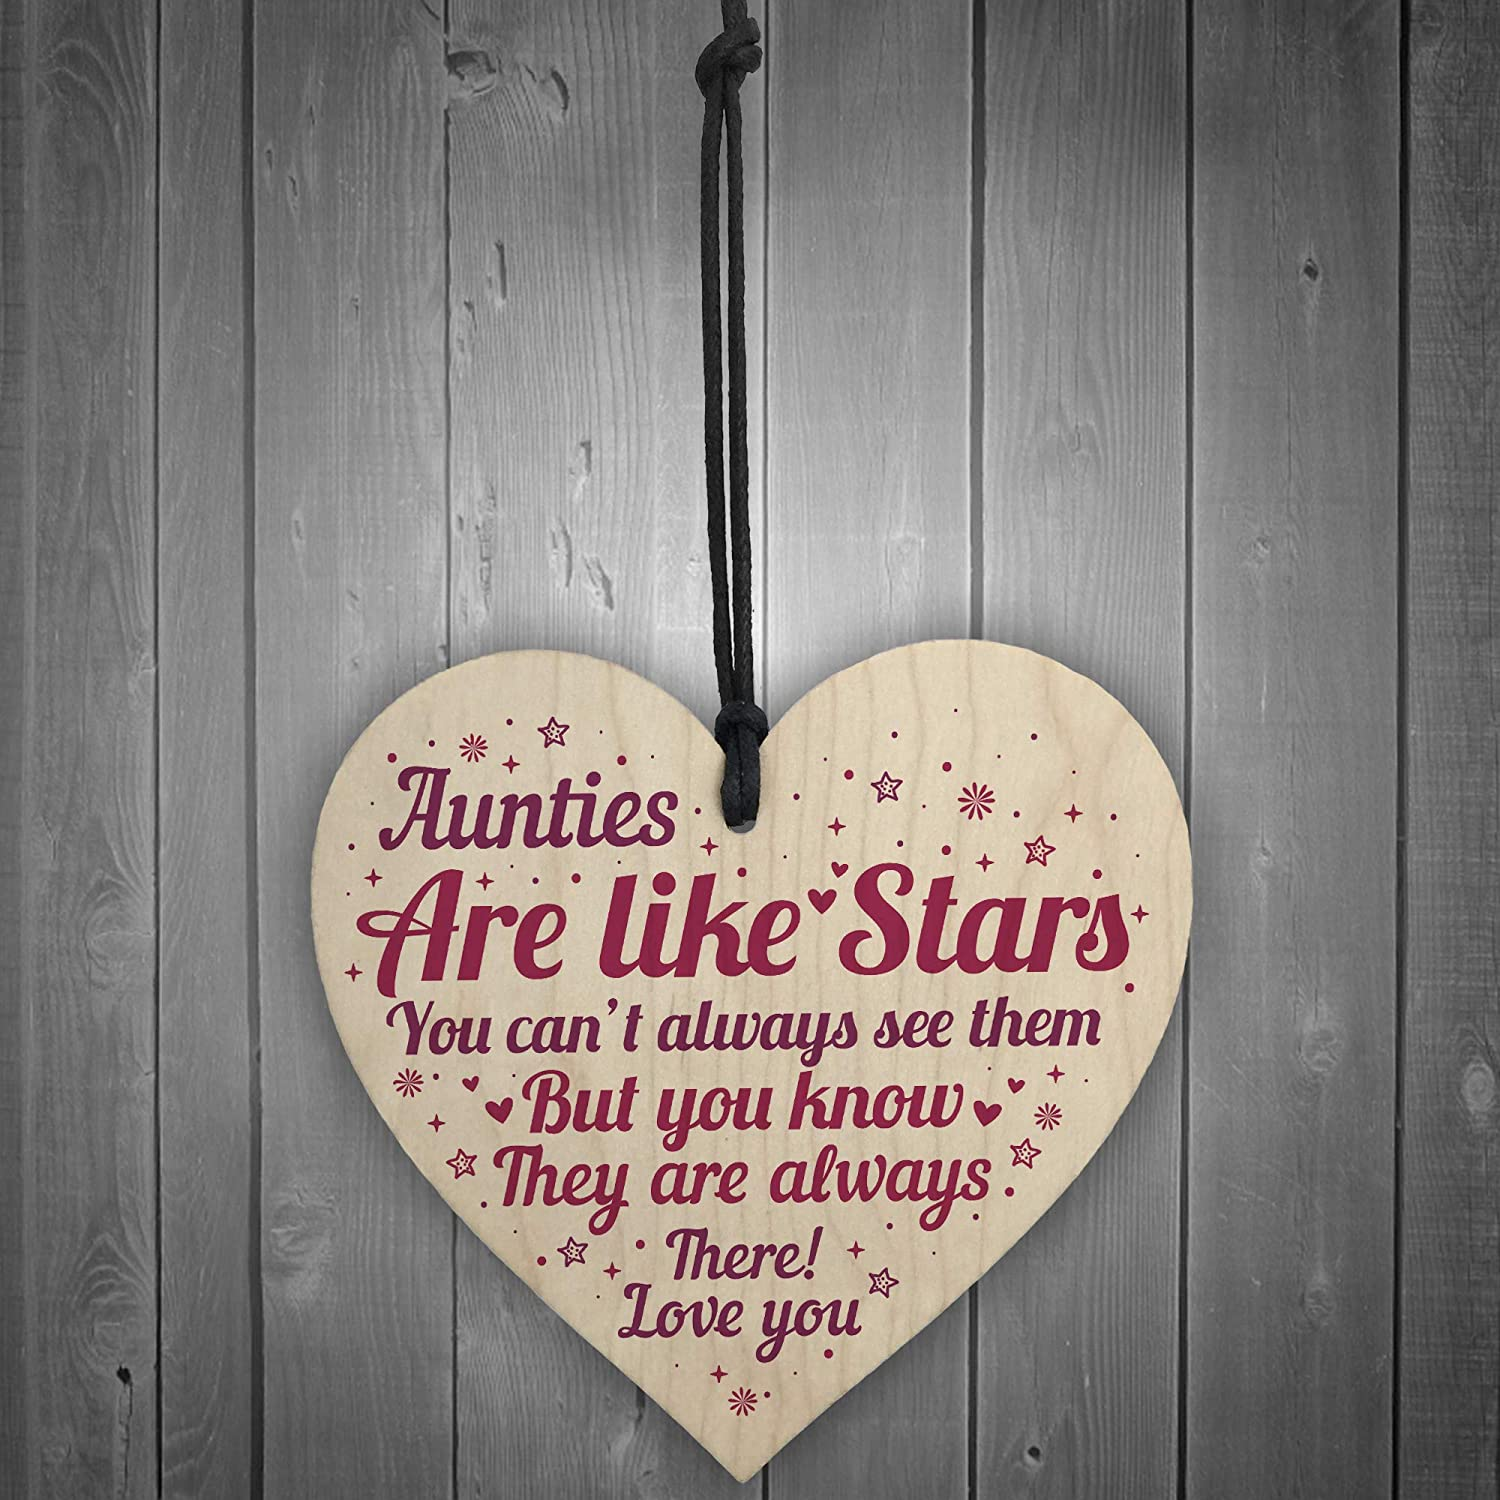 RED OCEAN Sister Auntie Aunt Aunty Wooden Heart Plaque Sign Birthday Thank You Keepsake Gift